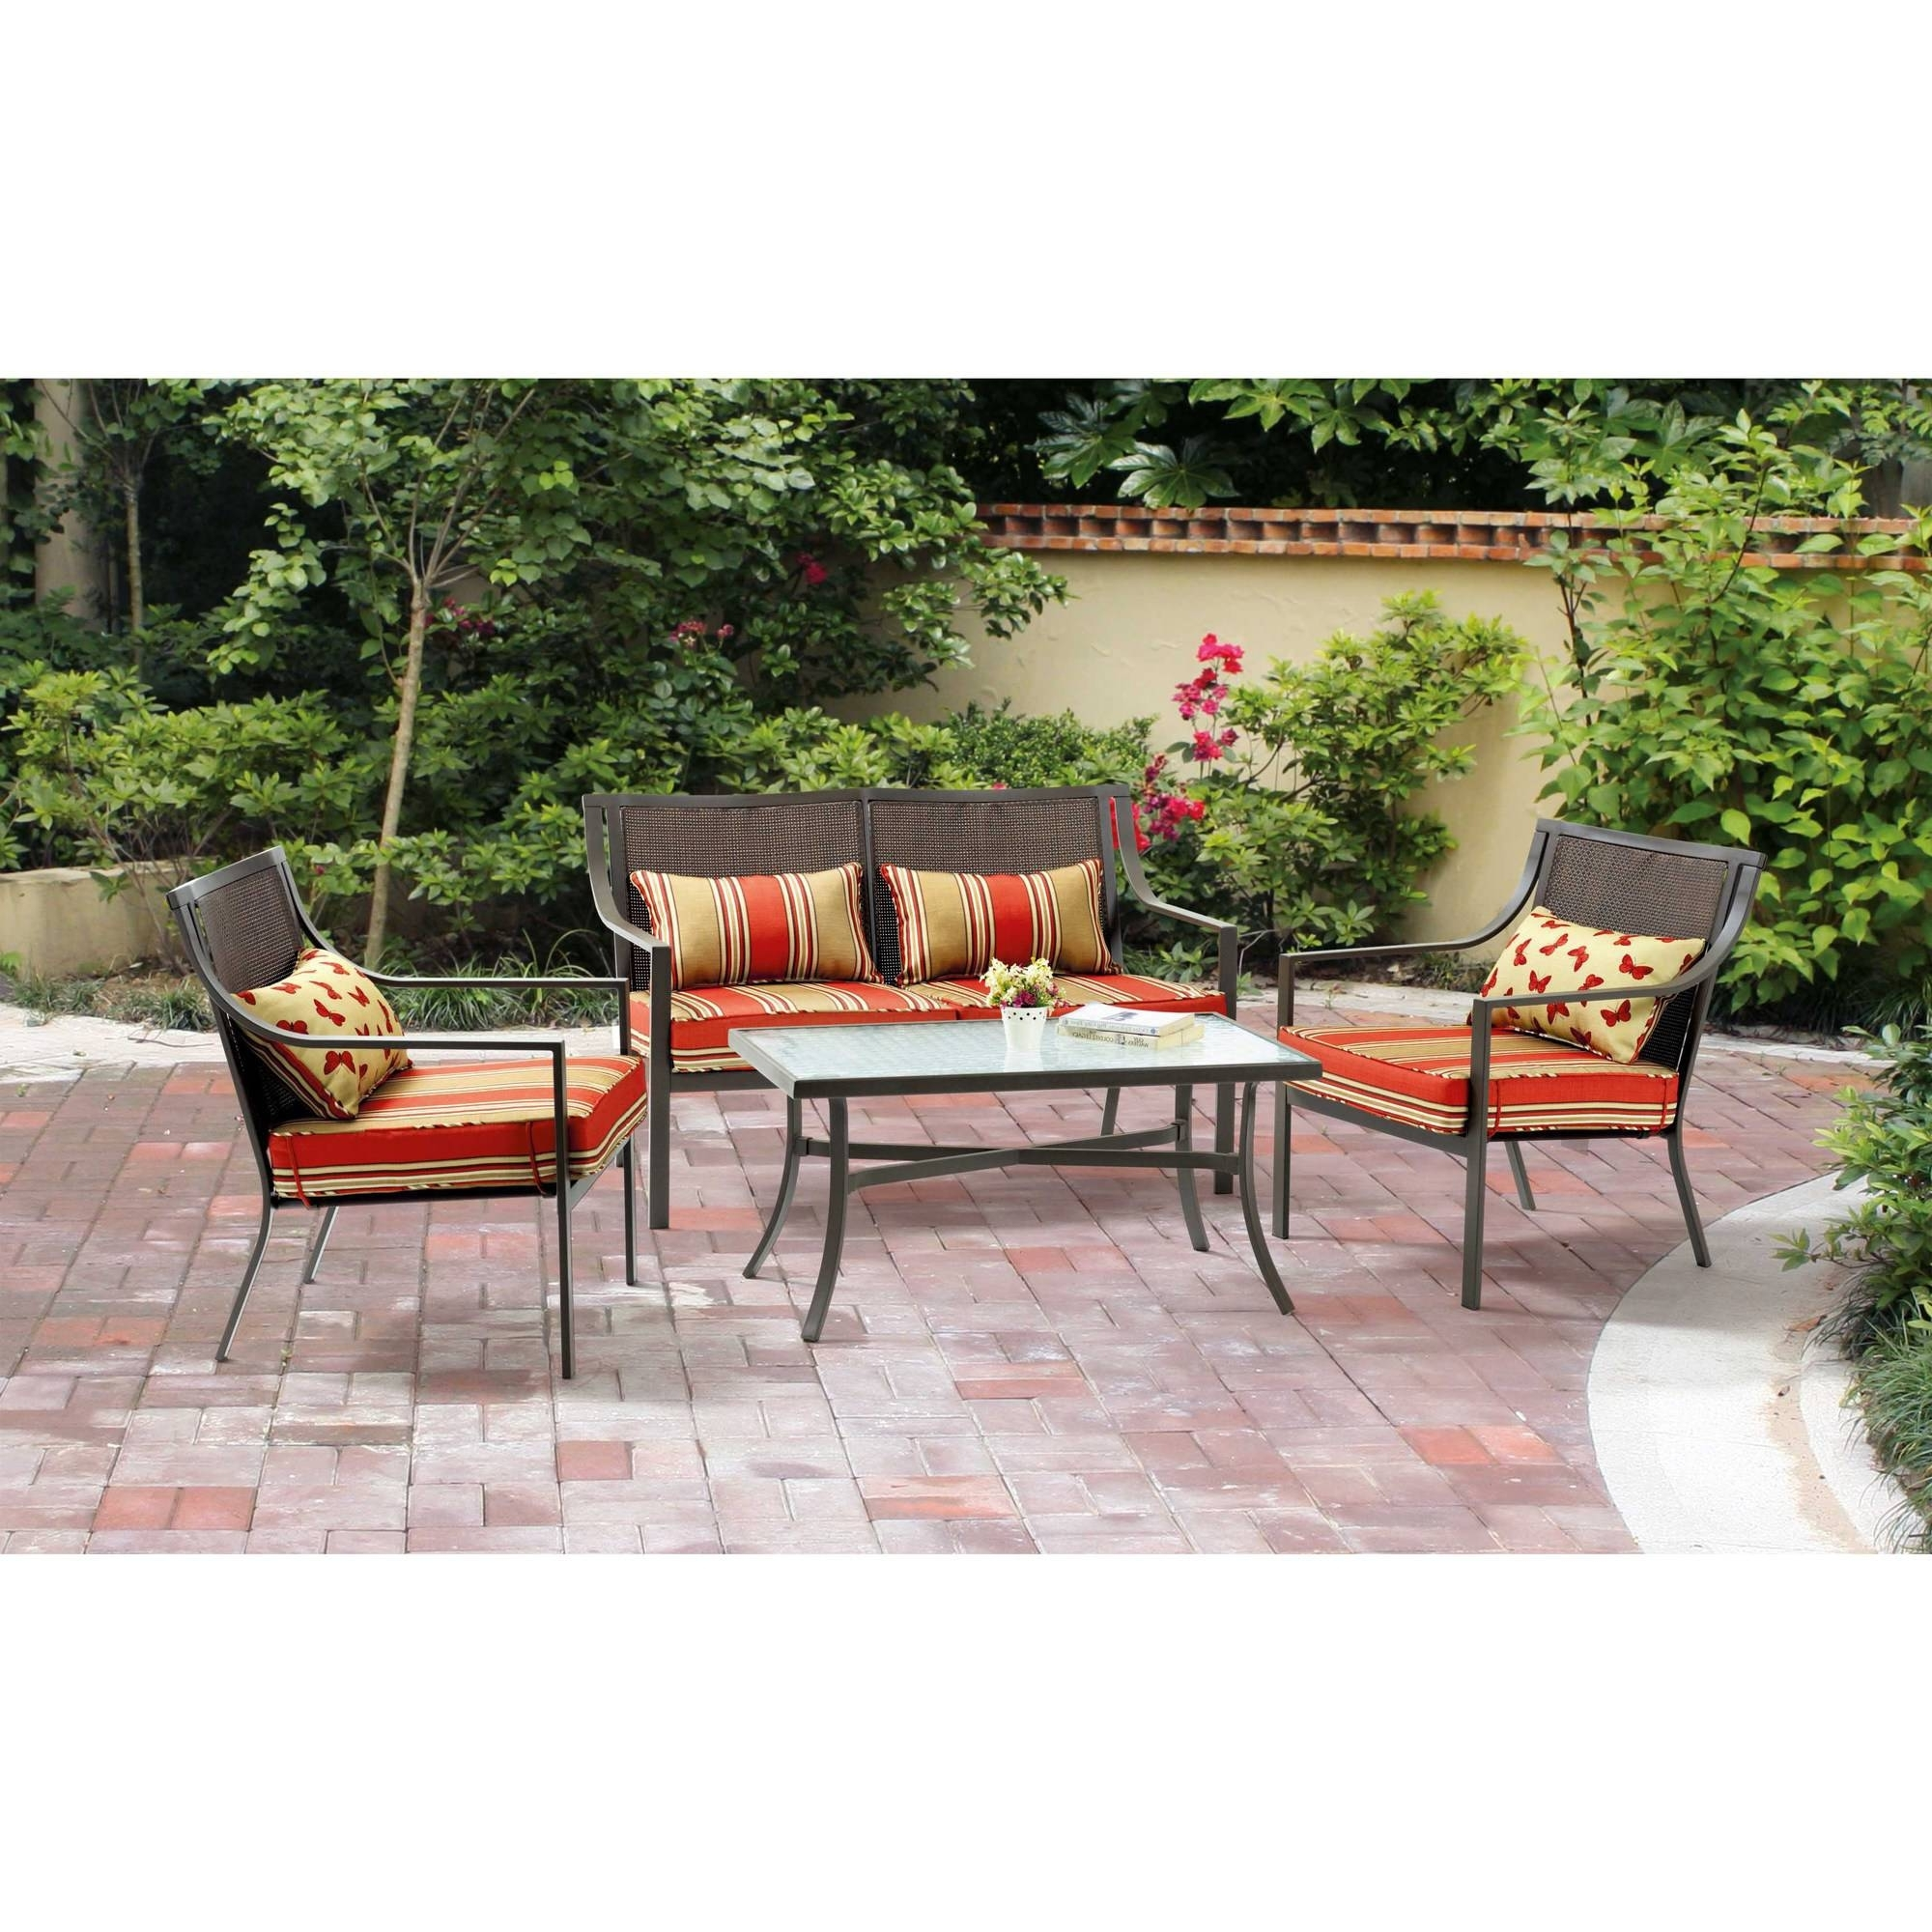 Patio : Covers Forctional Patio Furniture Outdoor Winter Curved Throughout Fashionable Kohl's Patio Conversation Sets (View 6 of 15)